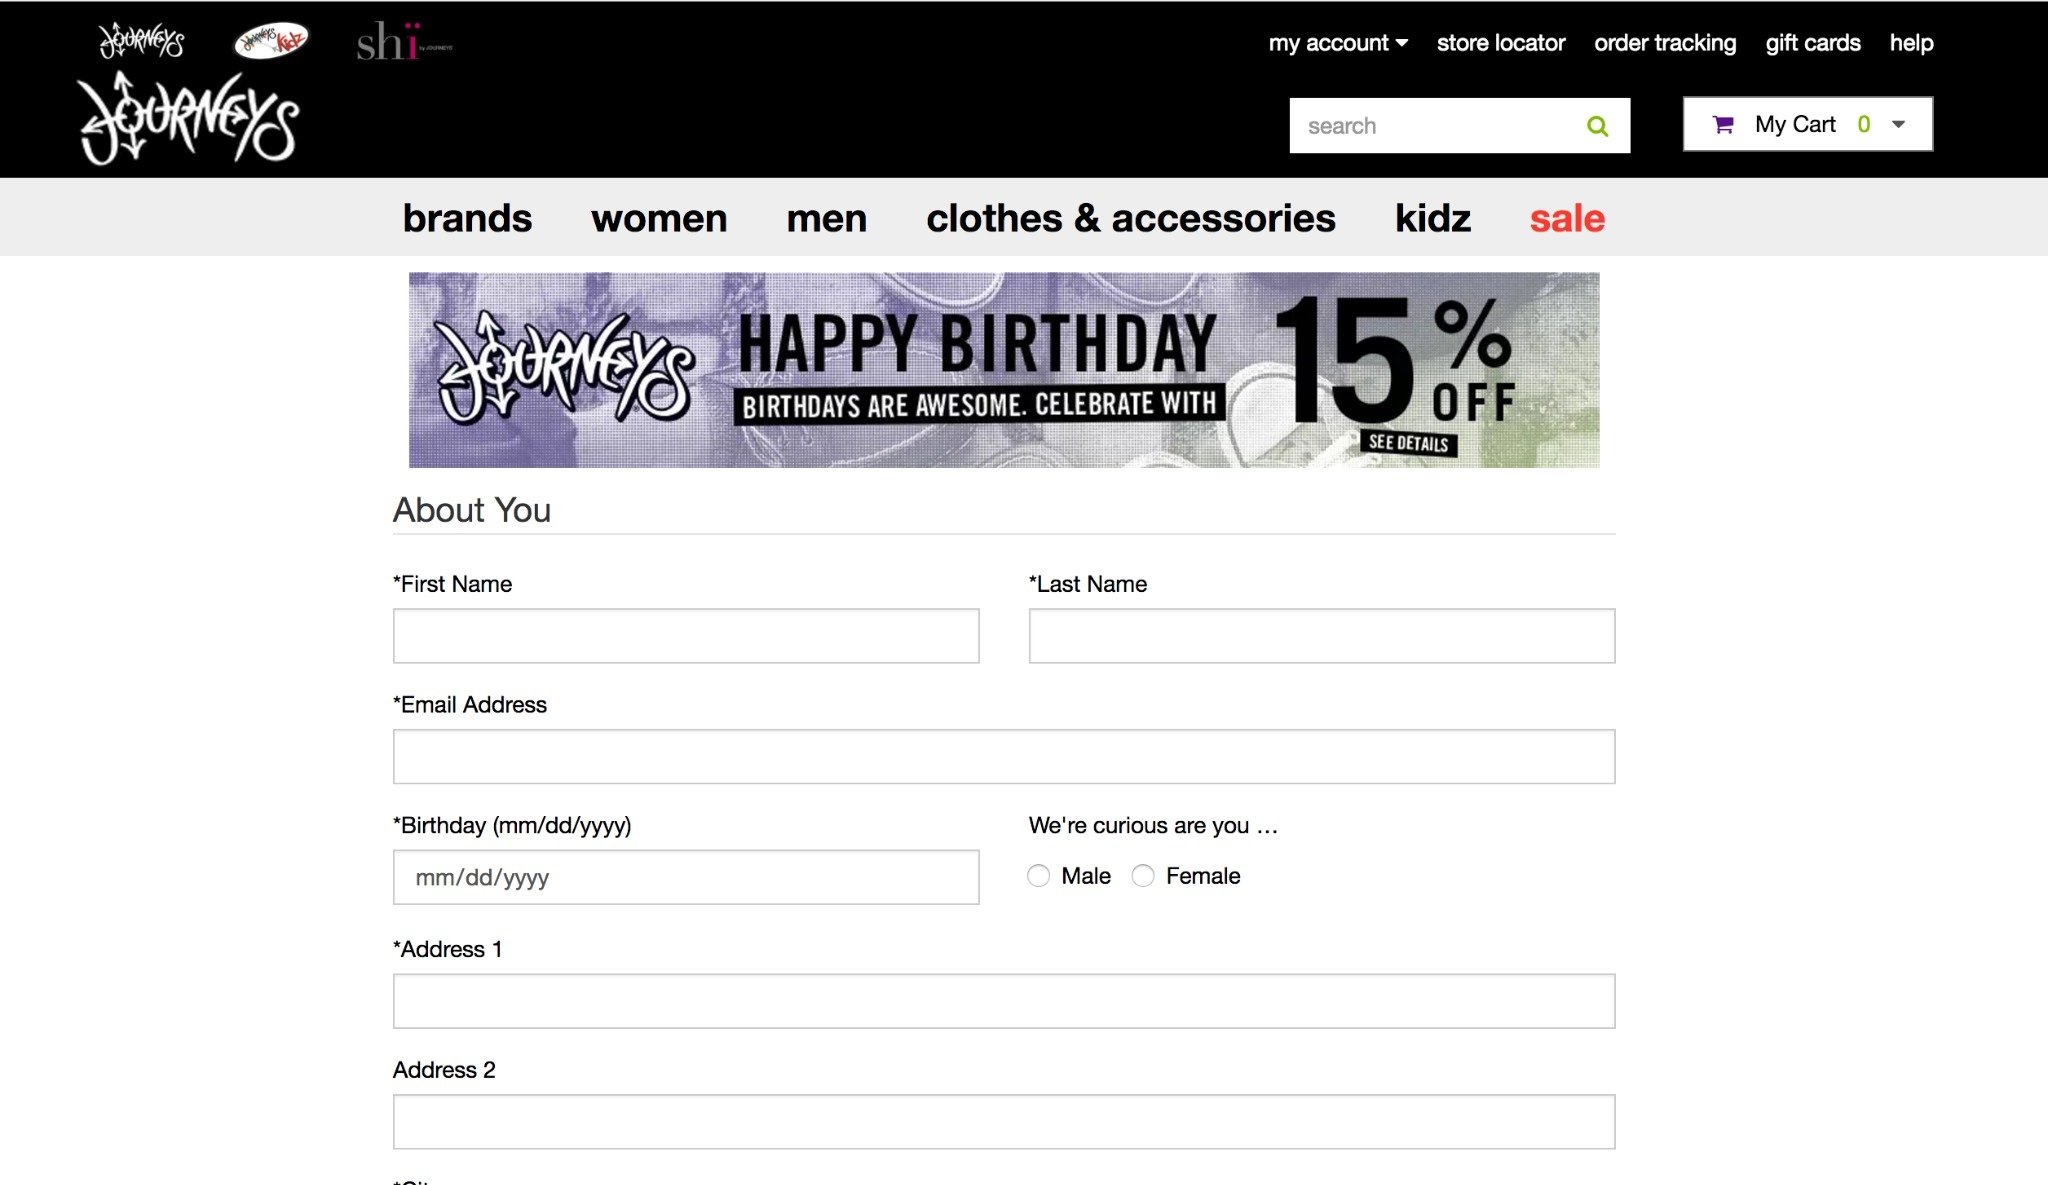 Journeys discount coupons